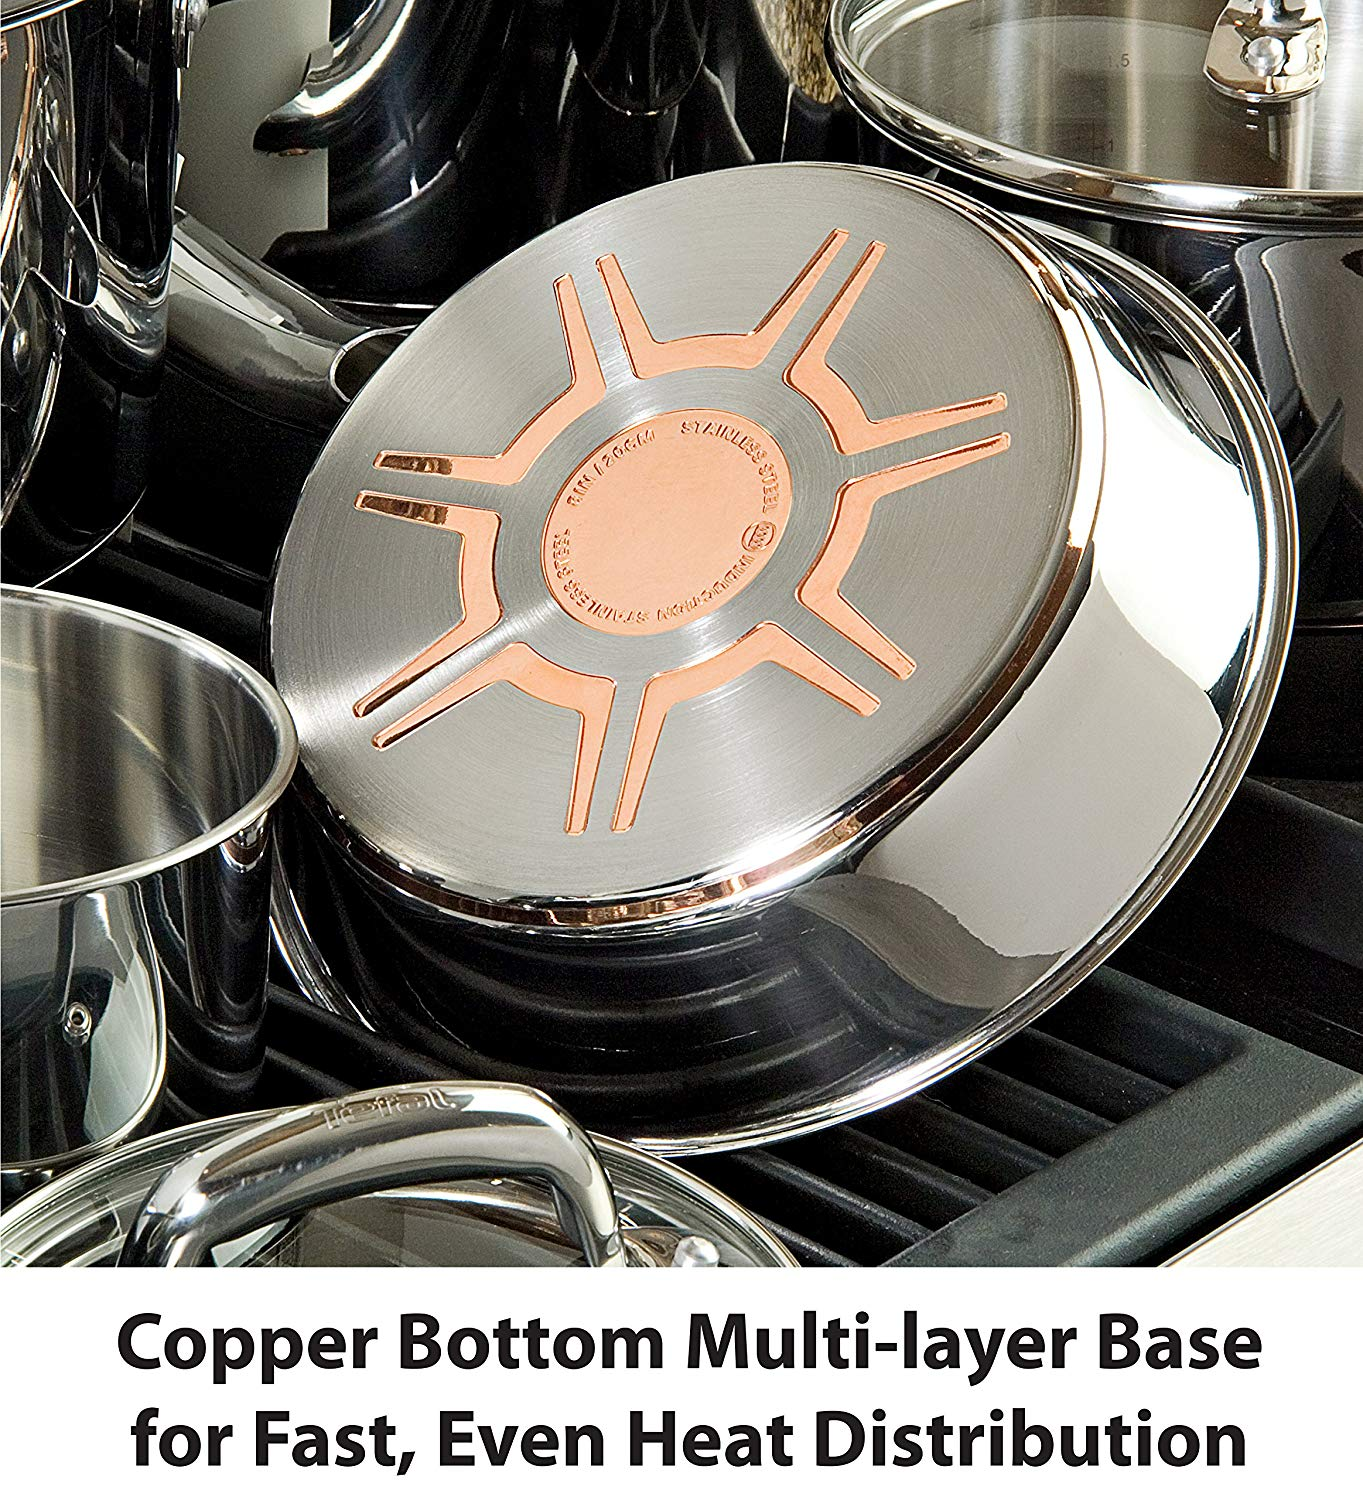 t-fal c836sc Copper Bottom Multi-layer Base for fast, Even Heat Distribution